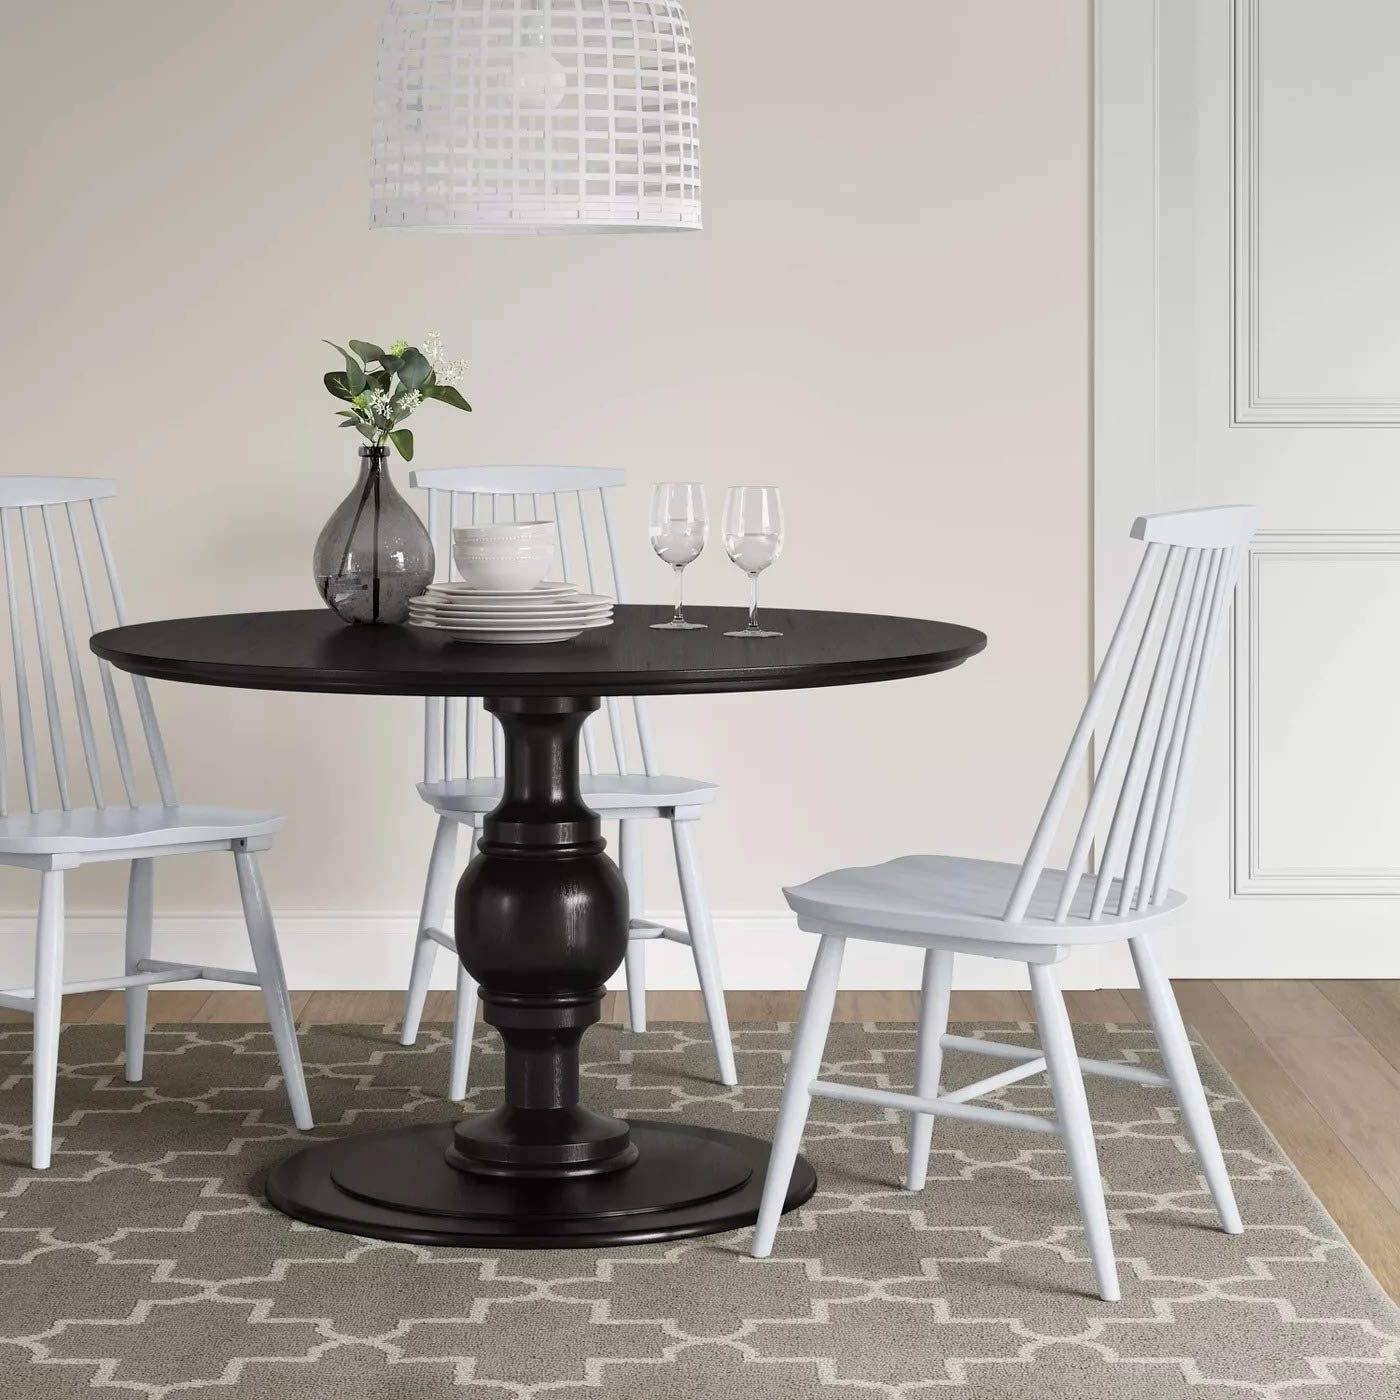 Popular Harwich Ceramic Garden Stools Within Amazon – Harwich High Back Windsor Dining Chair (View 25 of 30)